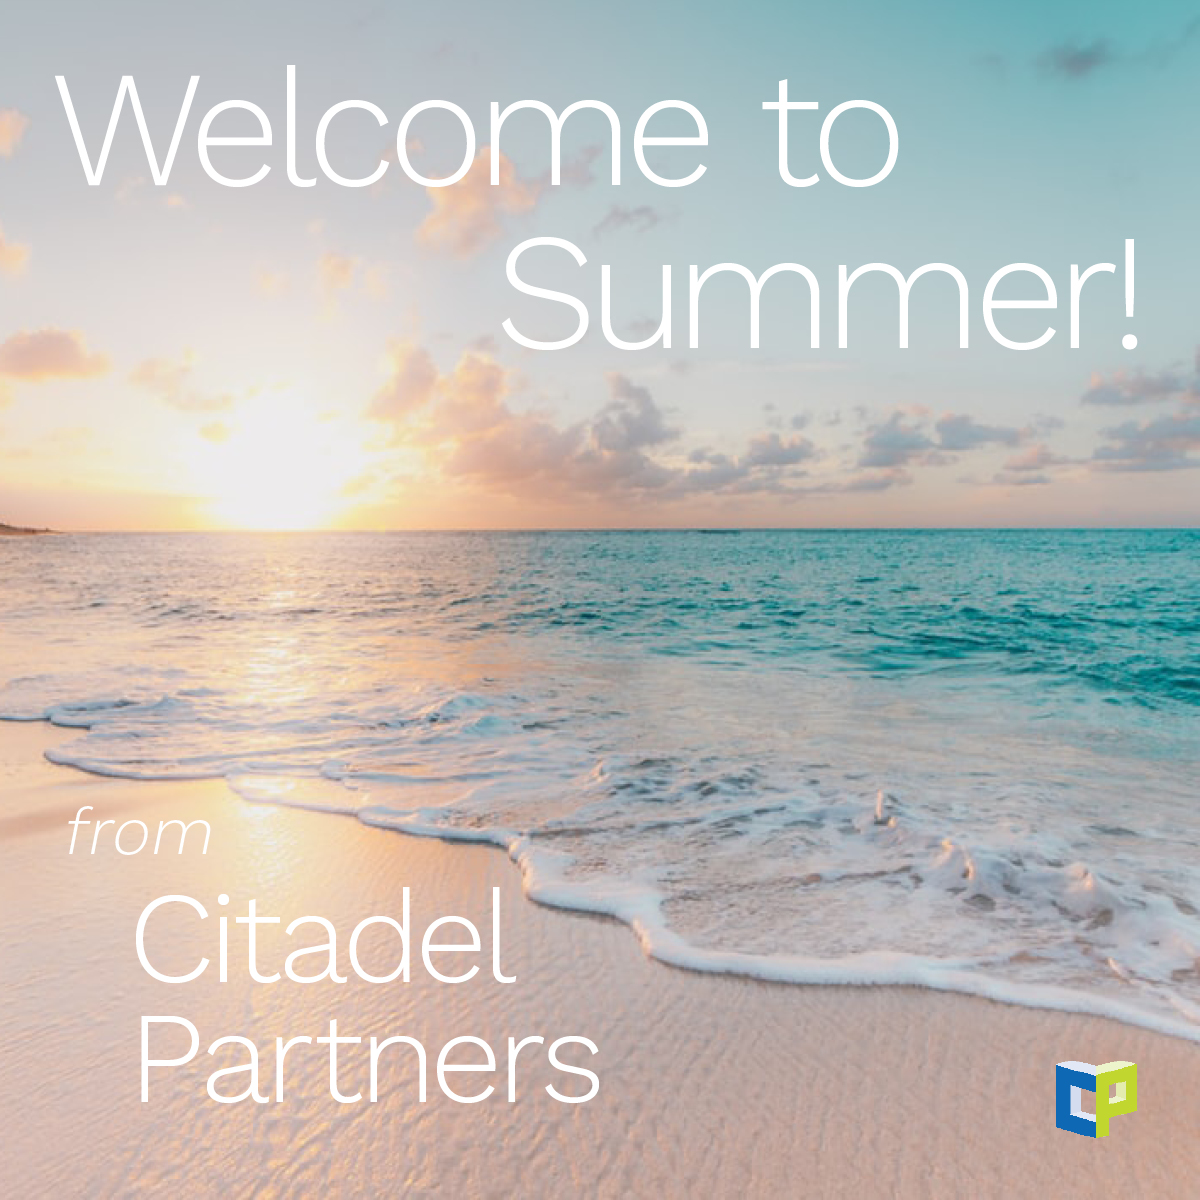 test Twitter Media - Welcome to Summer from Citadel Partners! #DallasCommercialRealEstate #CitadelPartners #summer2020 #summersolstice https://t.co/ZNyRj4obke